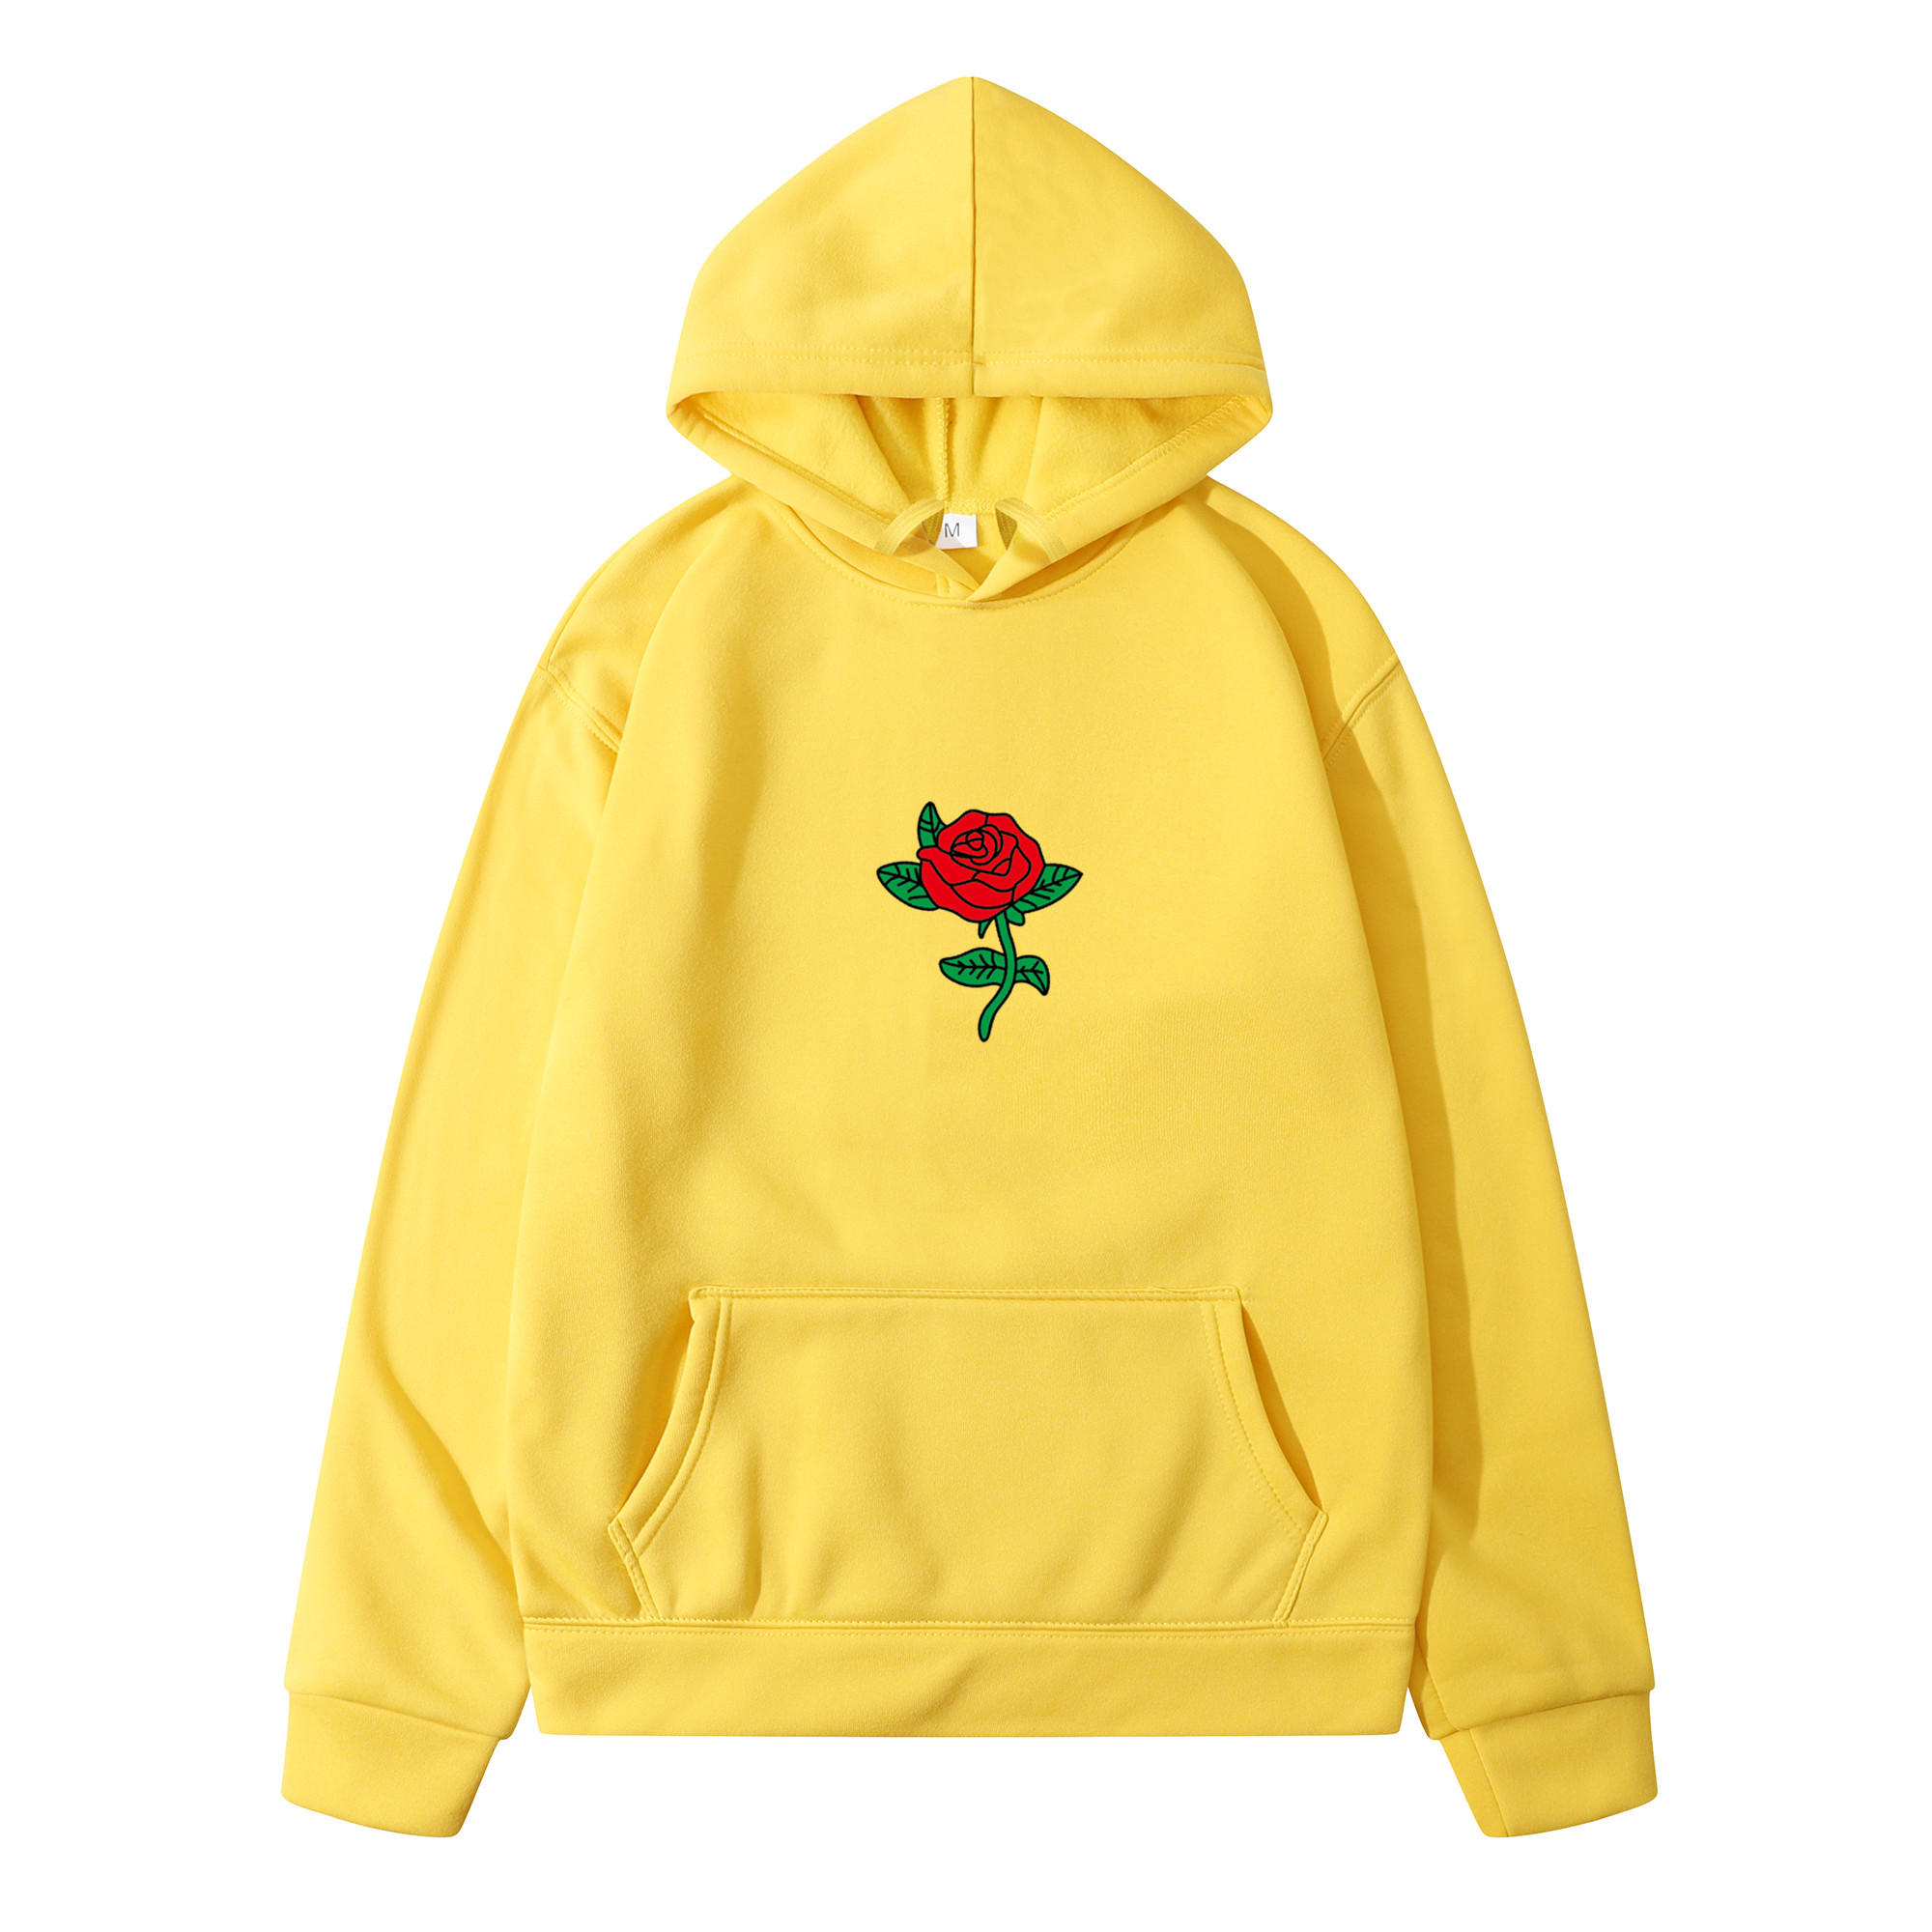 New Fashion 2020 Autumn Winter Latest Harajuku Poison Rose Print Hoodies High Quality Men Women Hip Hop Streetwear Clothing